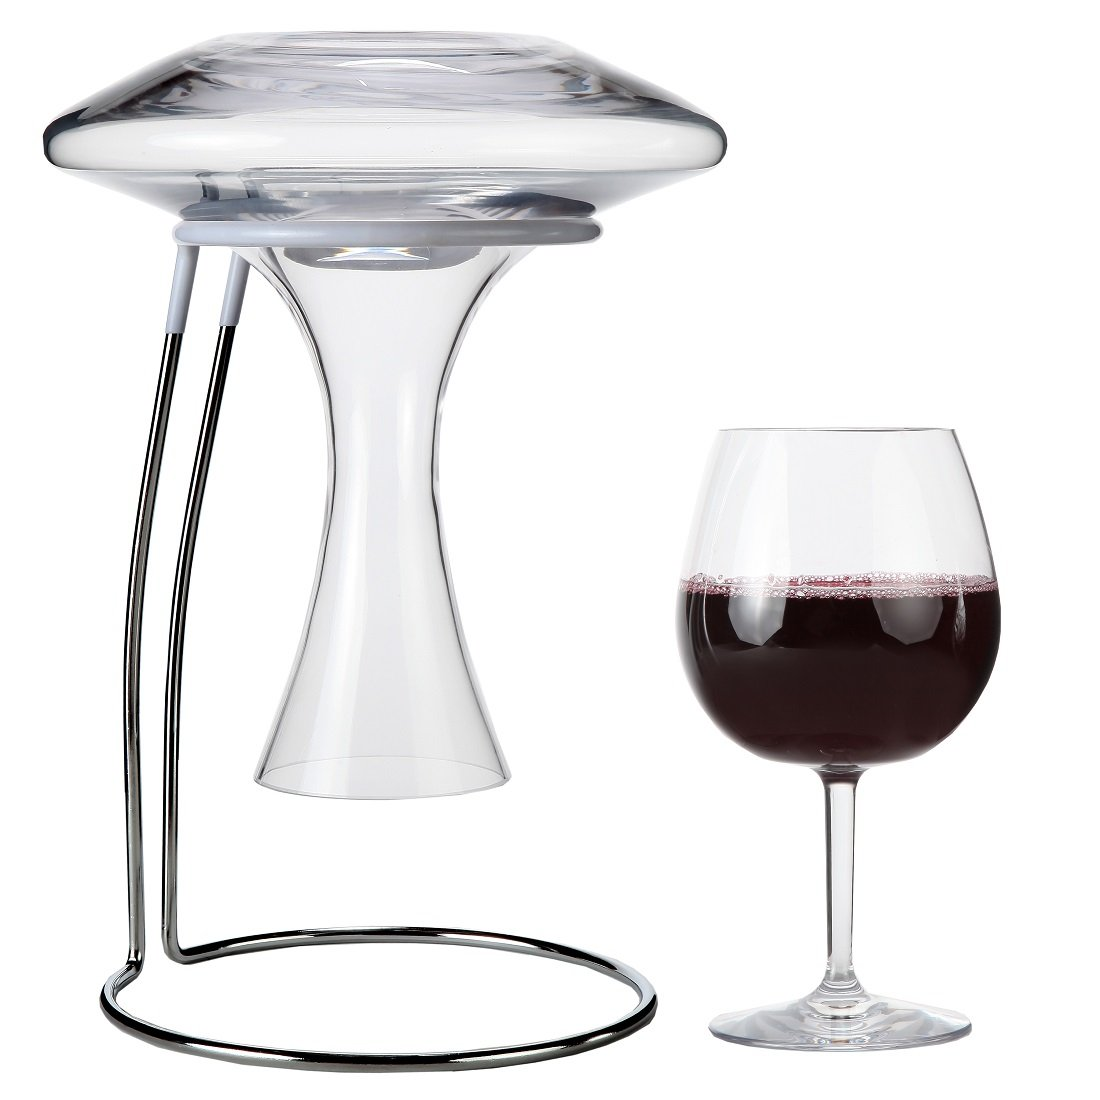 Lily's Home Wine Decanter Drying Stand For Large Bottomed Wine Decanters with Rubber Coated Top to Prevent Scratches and with a Decanter Cleaning Brush